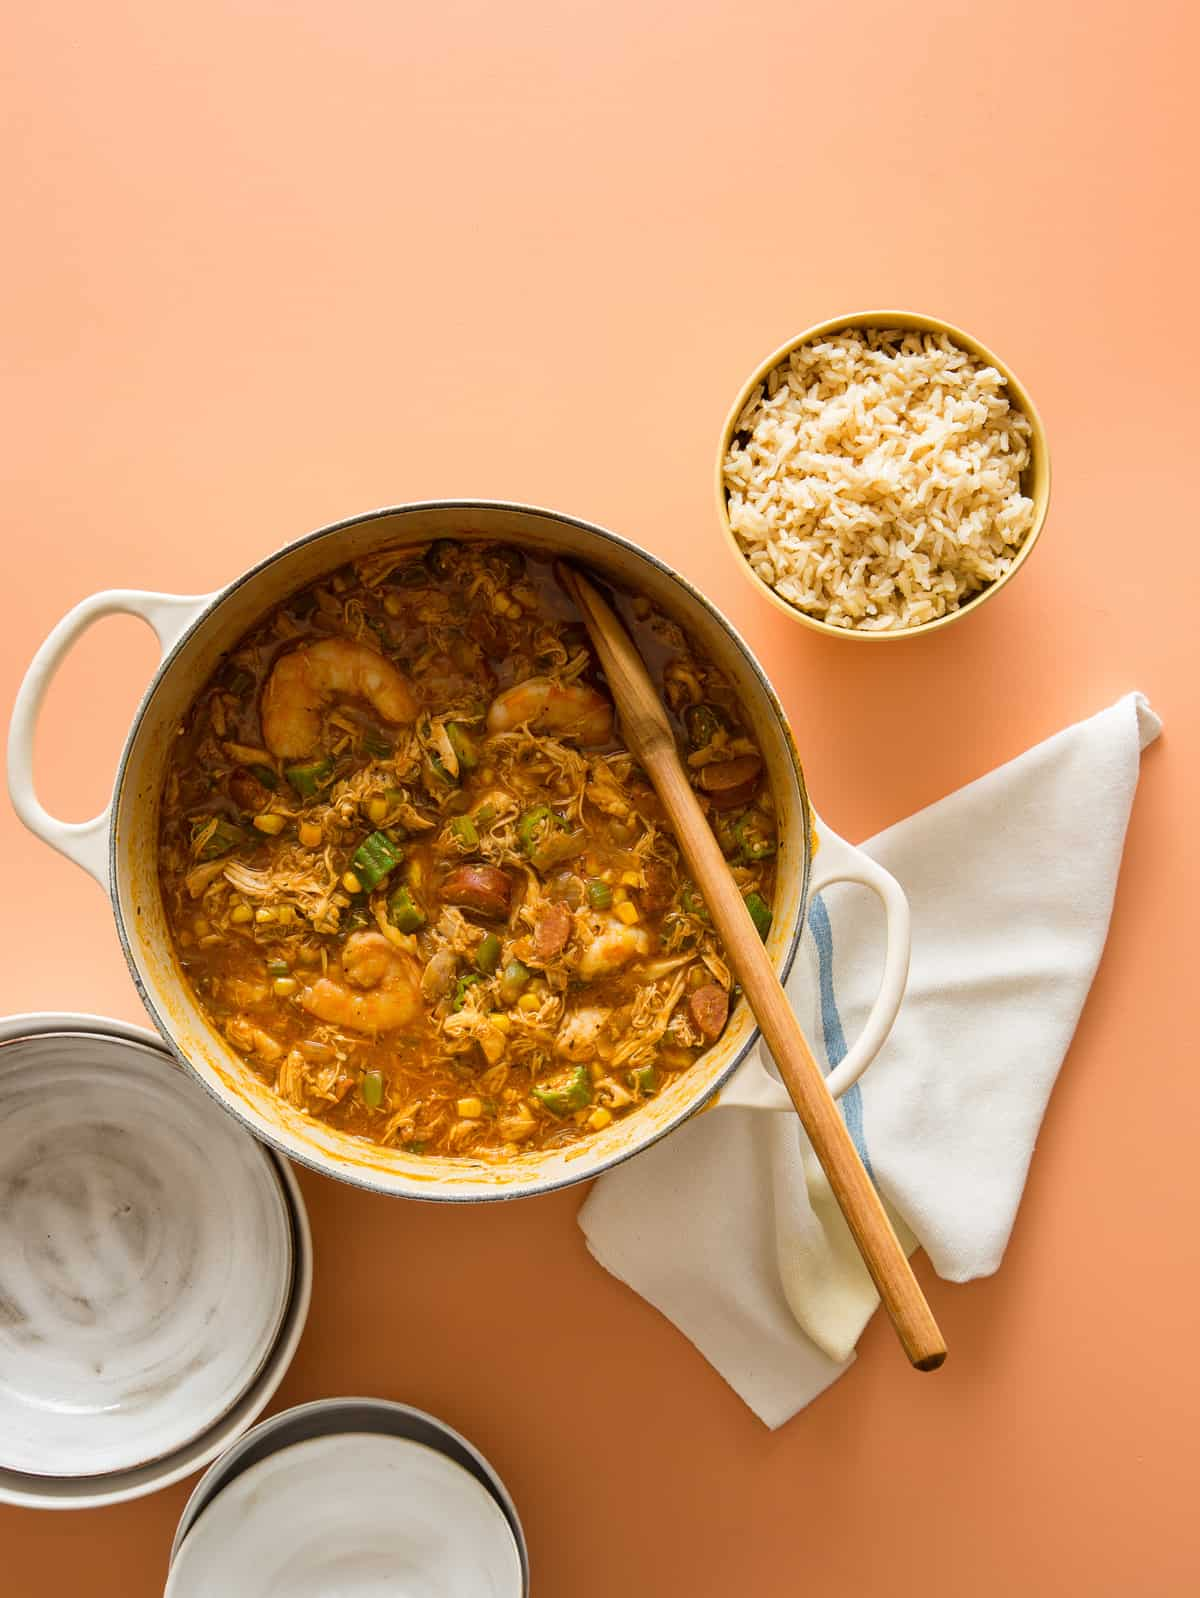 A pot of chicken and andouille gumbo with a bowl of rice and a wooden spoon.